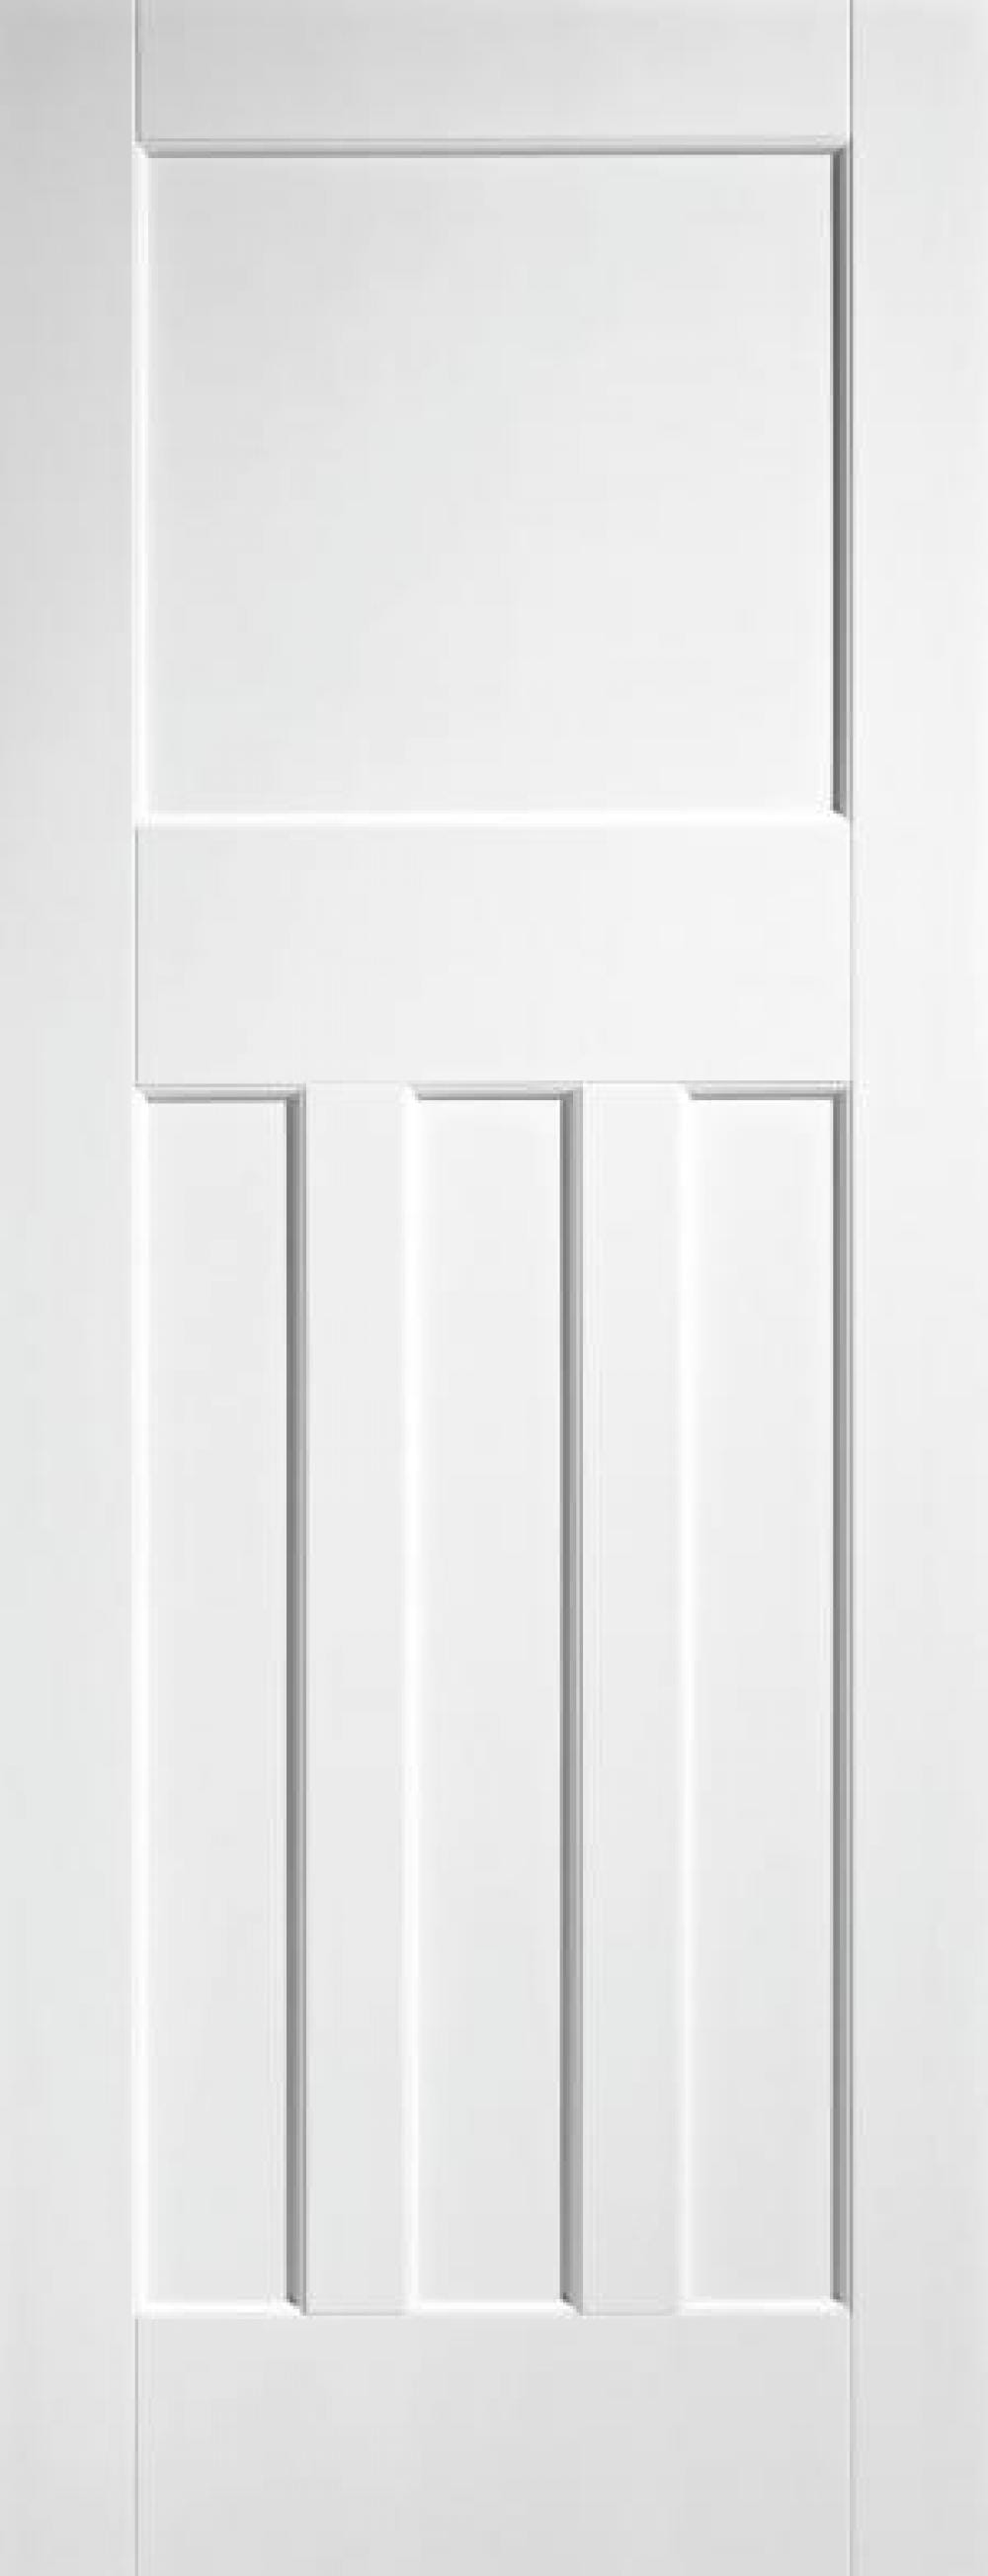 Dx30s Style Solid White Primed Image